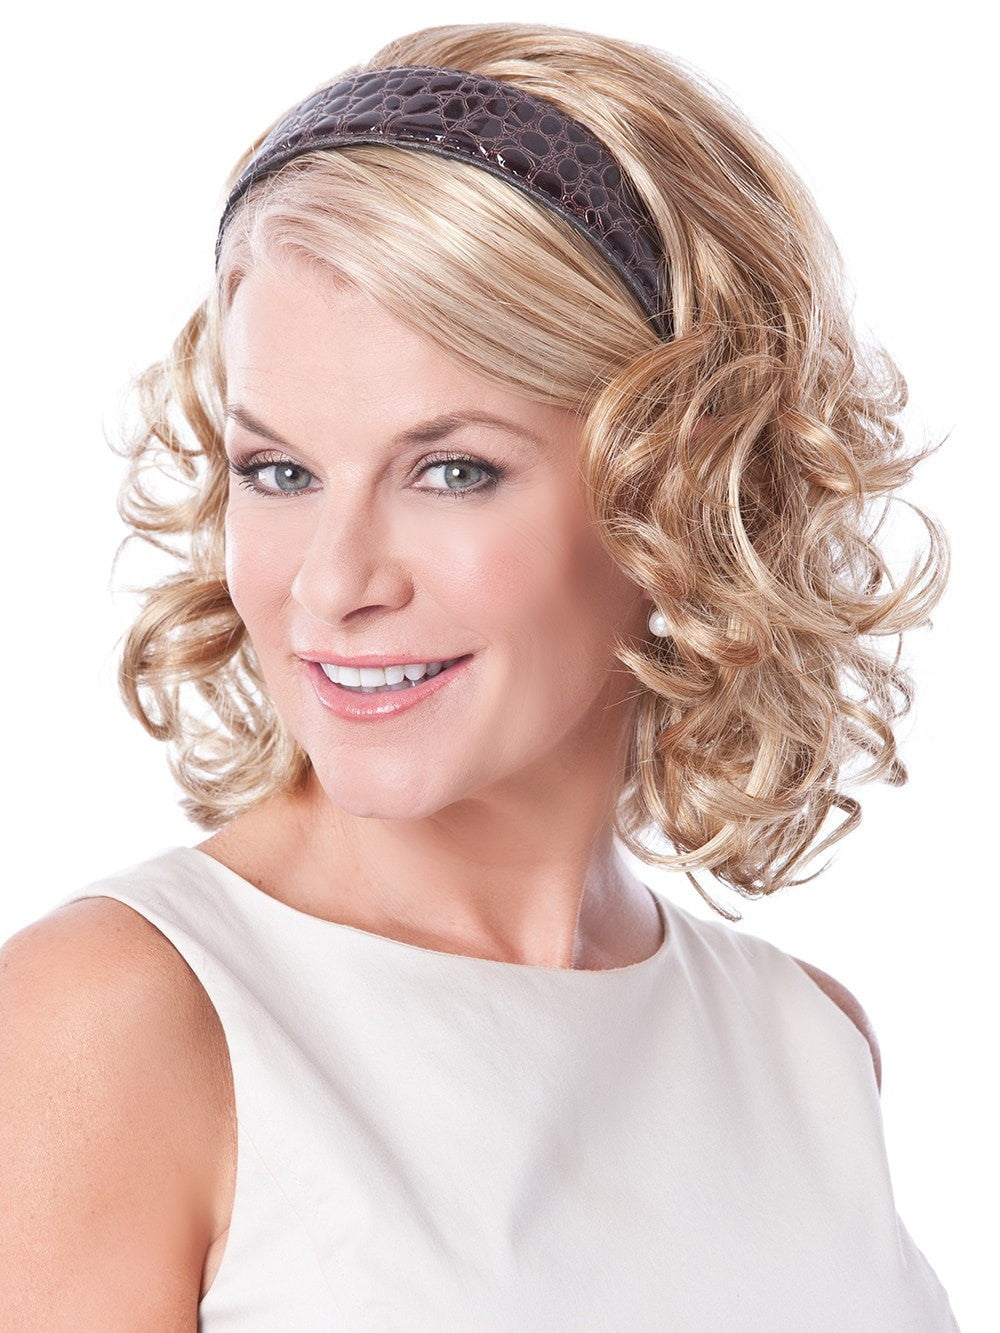 Every day is a great hair day with the right hair accessories in your collection. These handy products can style and decorate your locks with ease. Keep unruly bangs in place with a large, decorative headband or secure braids with a set of tiny bands.